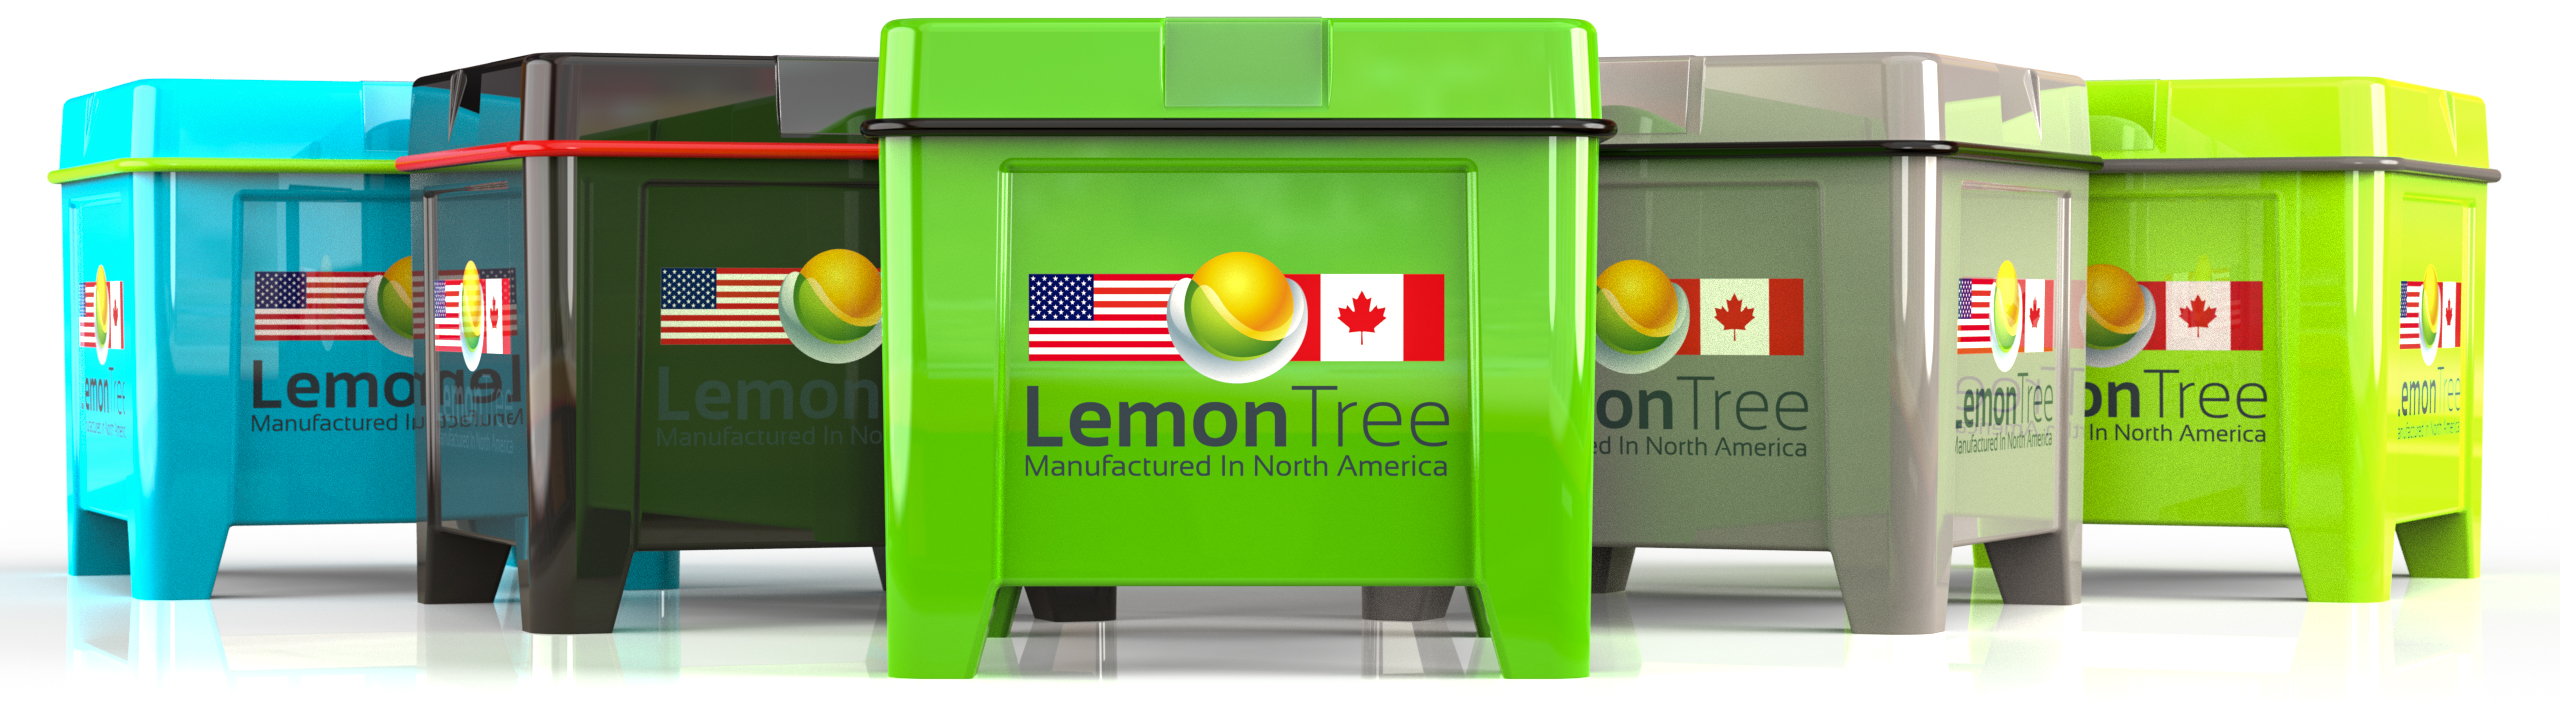 LemonTree Supermarket and Grocery Produce Display Canada and USA